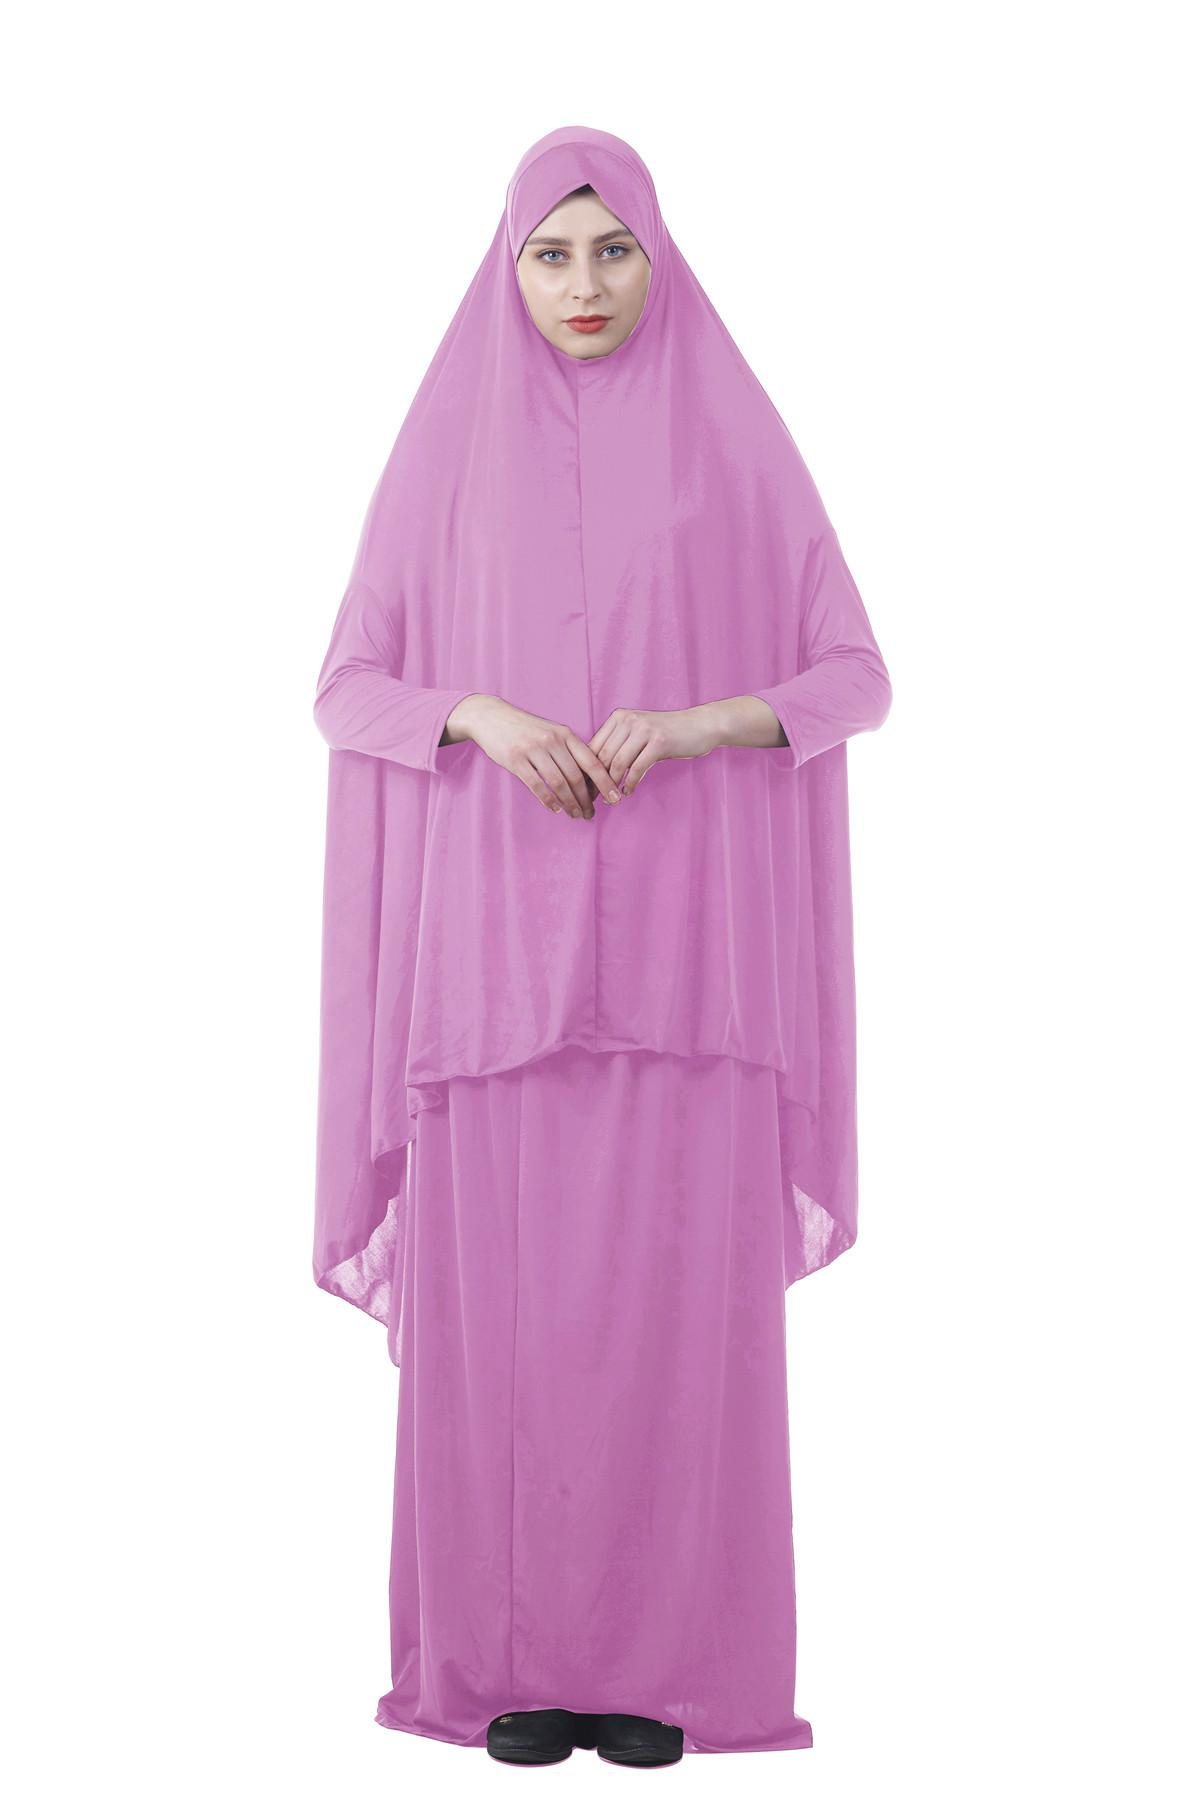 c490bef2e91c Formal Muslim Prayer Garment Sets Hijab Dress Abaya Afghanistan Islamic  Clothing Namaz Long Prayer Hijab Moslim Jurken Abayas ~ Hot Sale June 2019